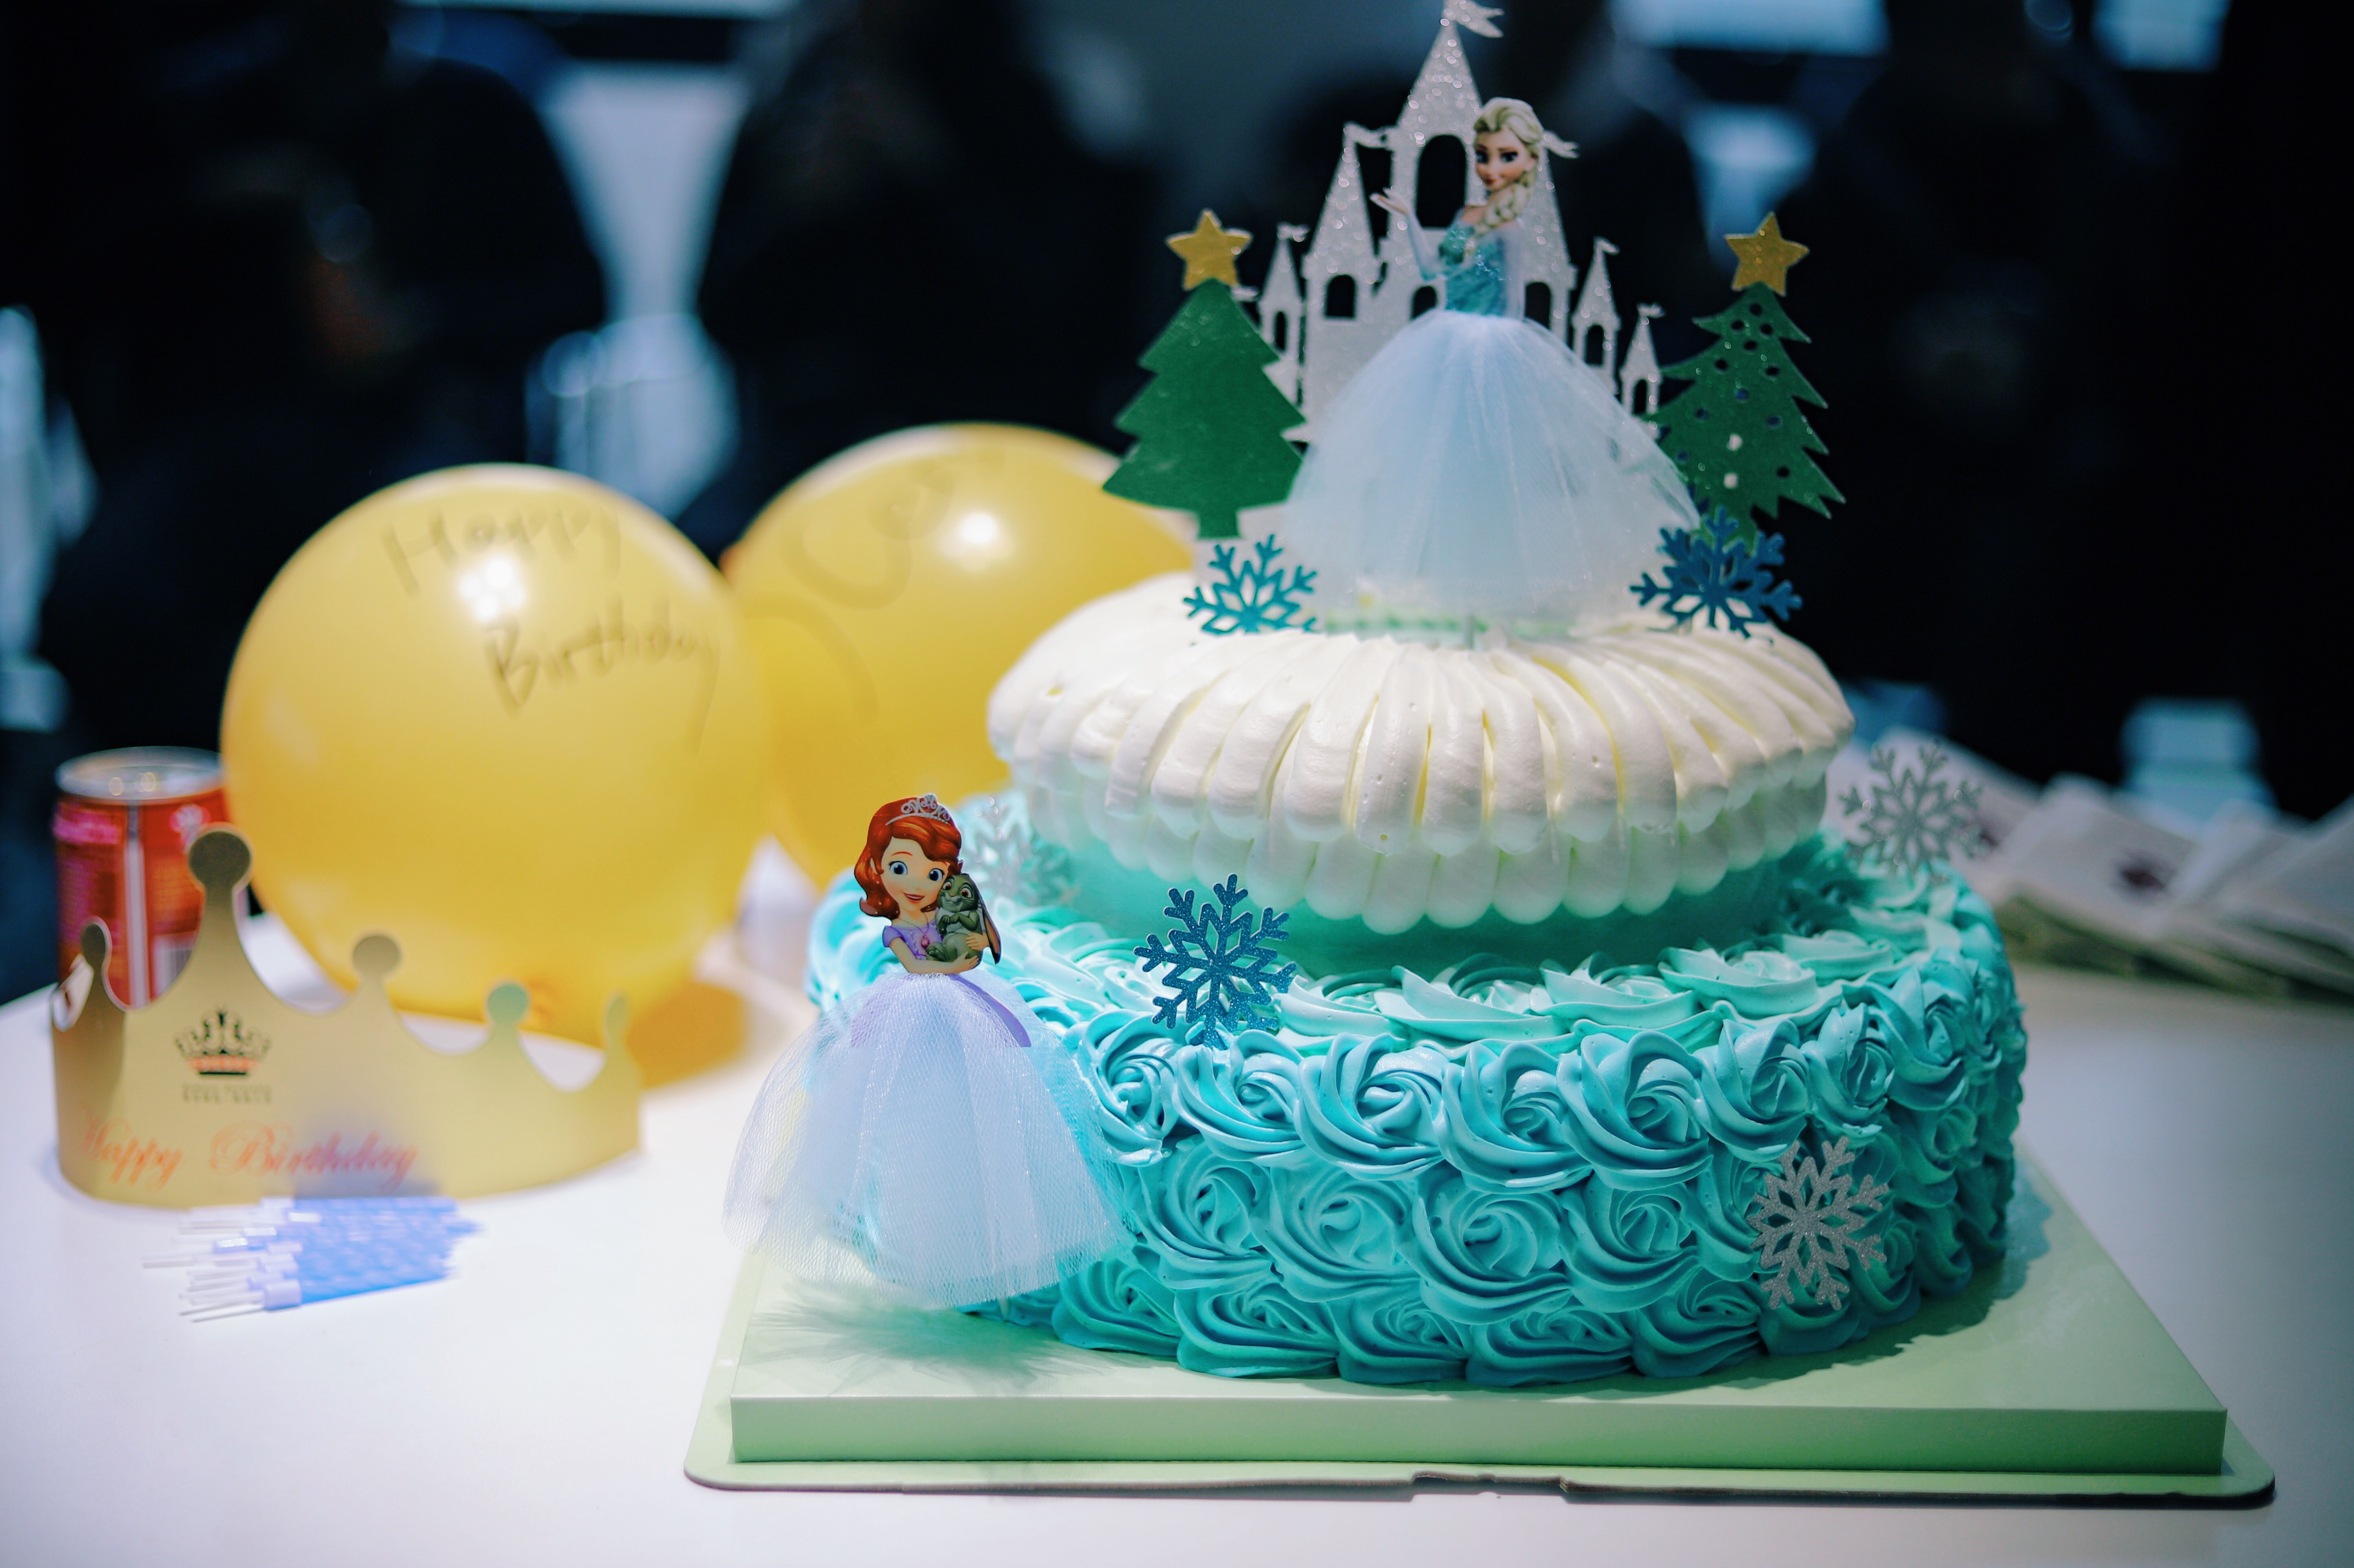 500 Happy Birthday Images Download The Perfect Birthday